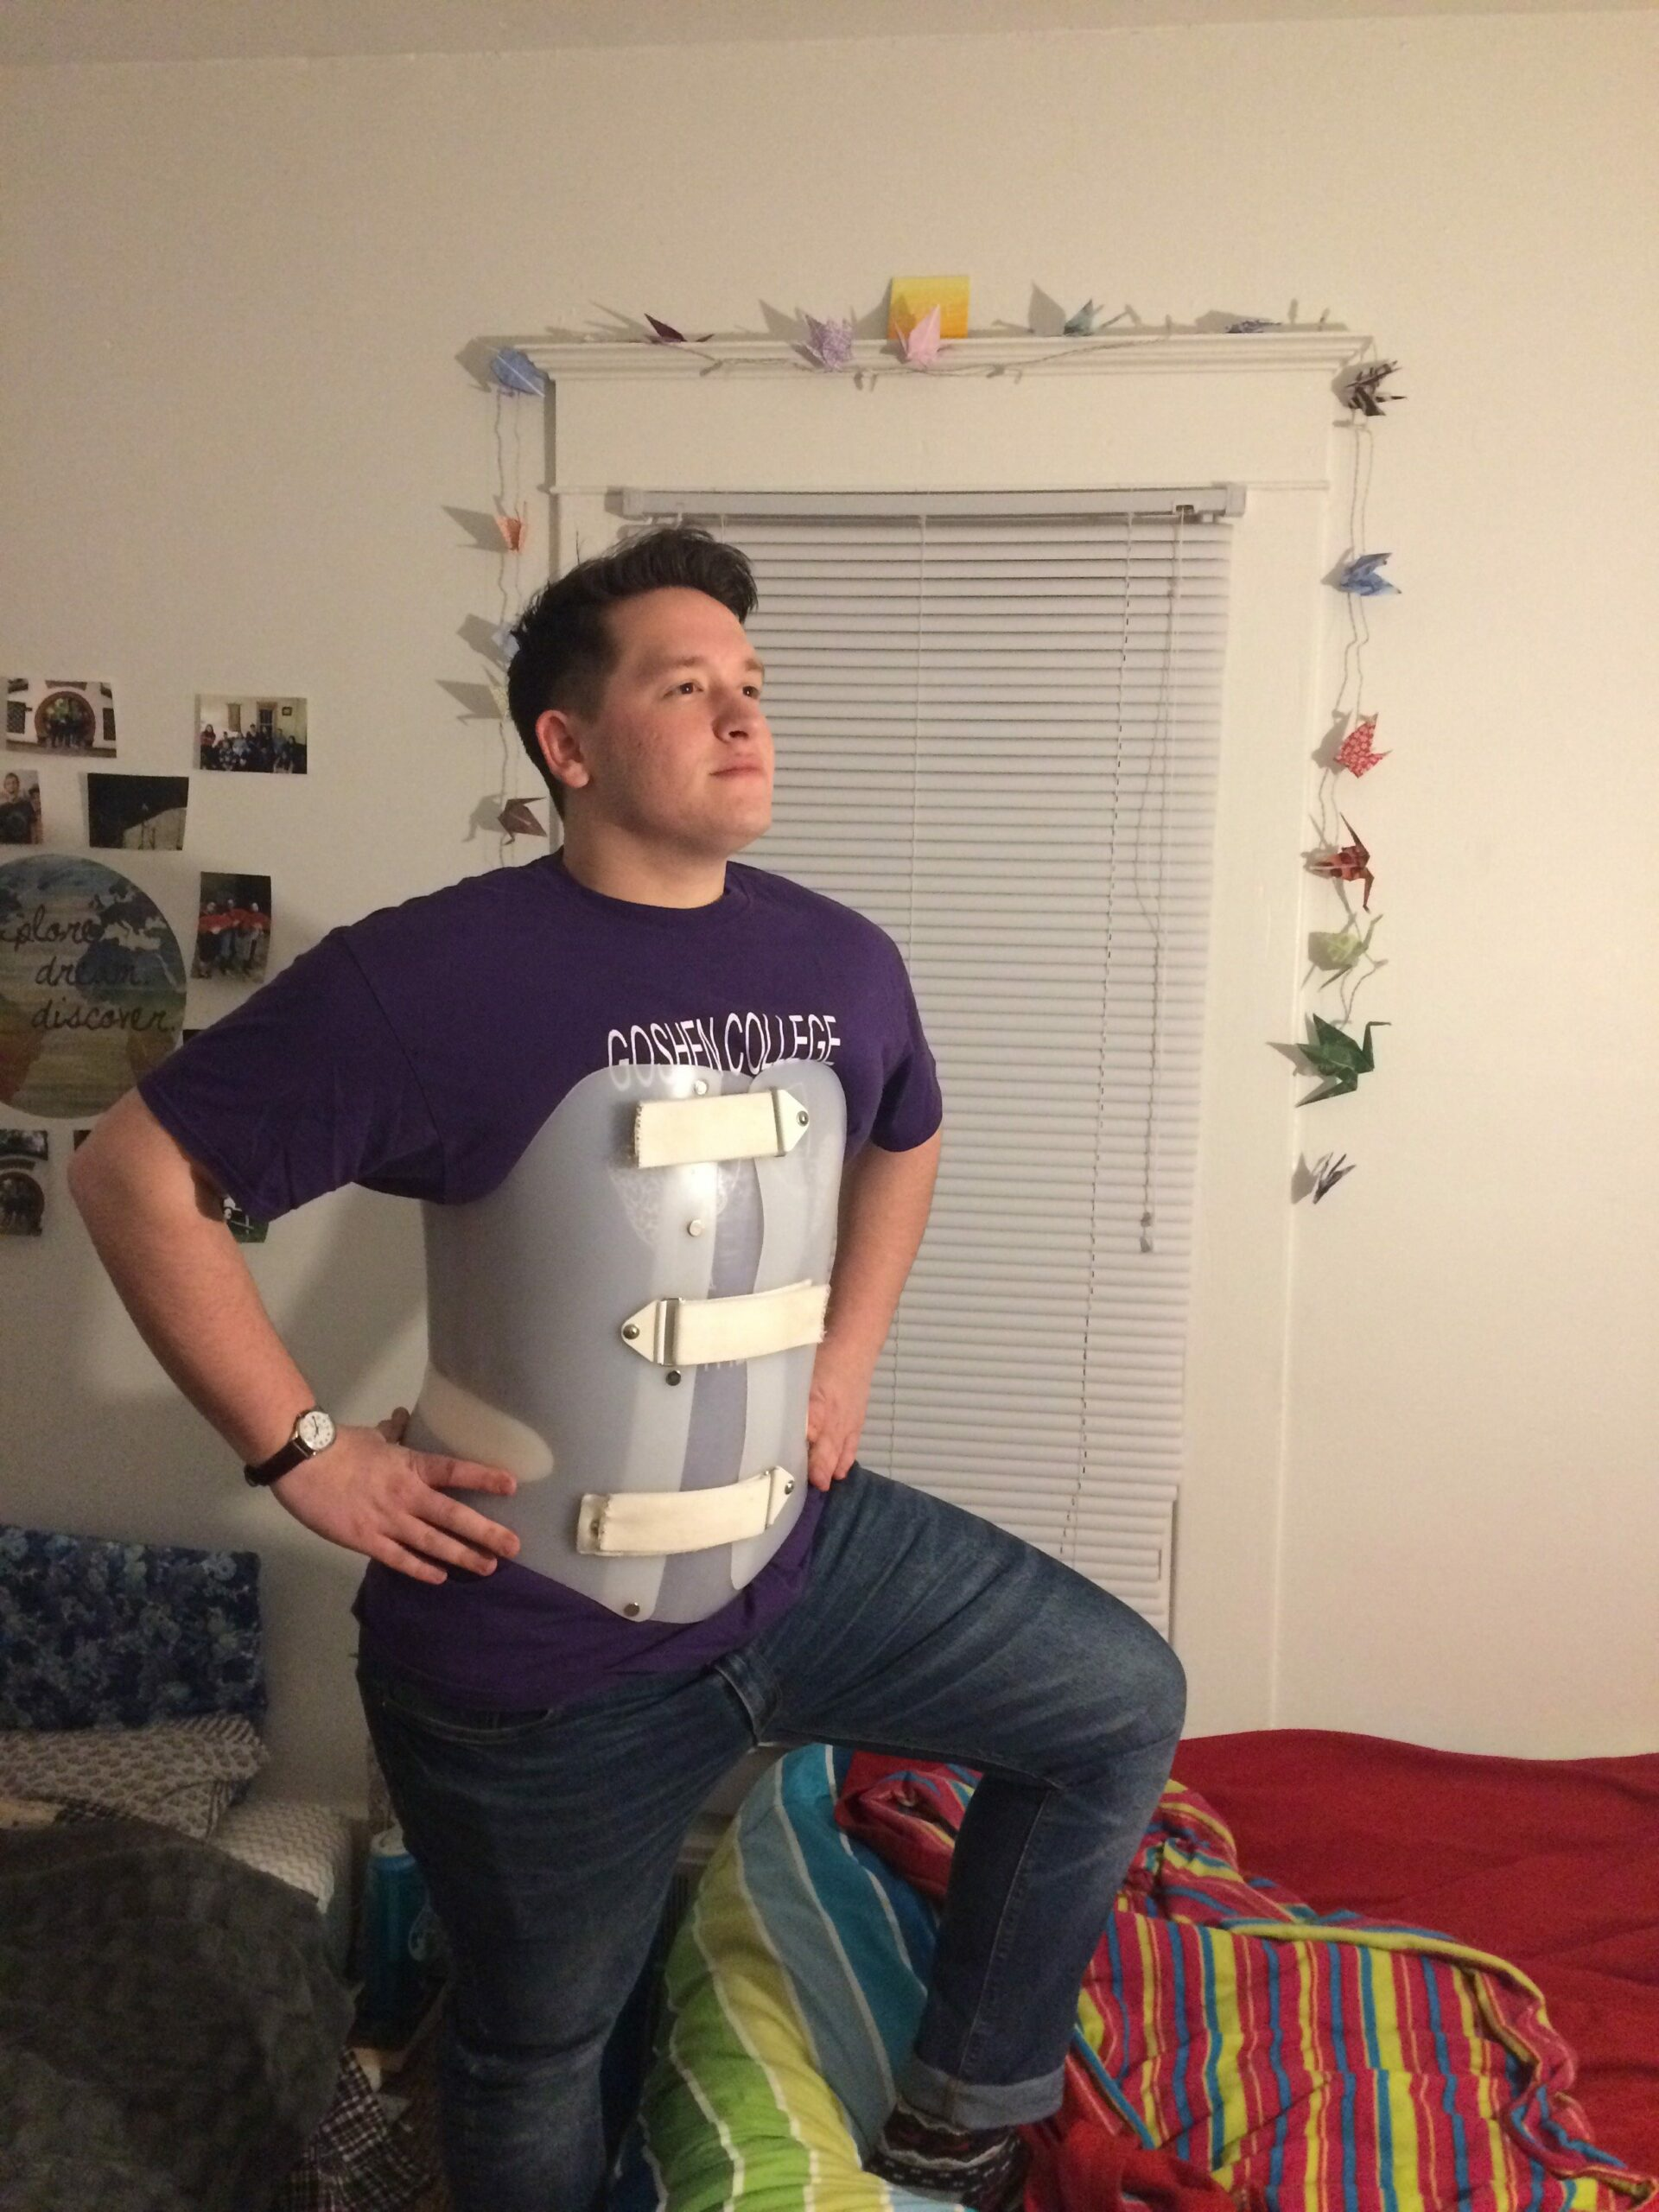 Jonah Yoder strikes a pose in his back brace